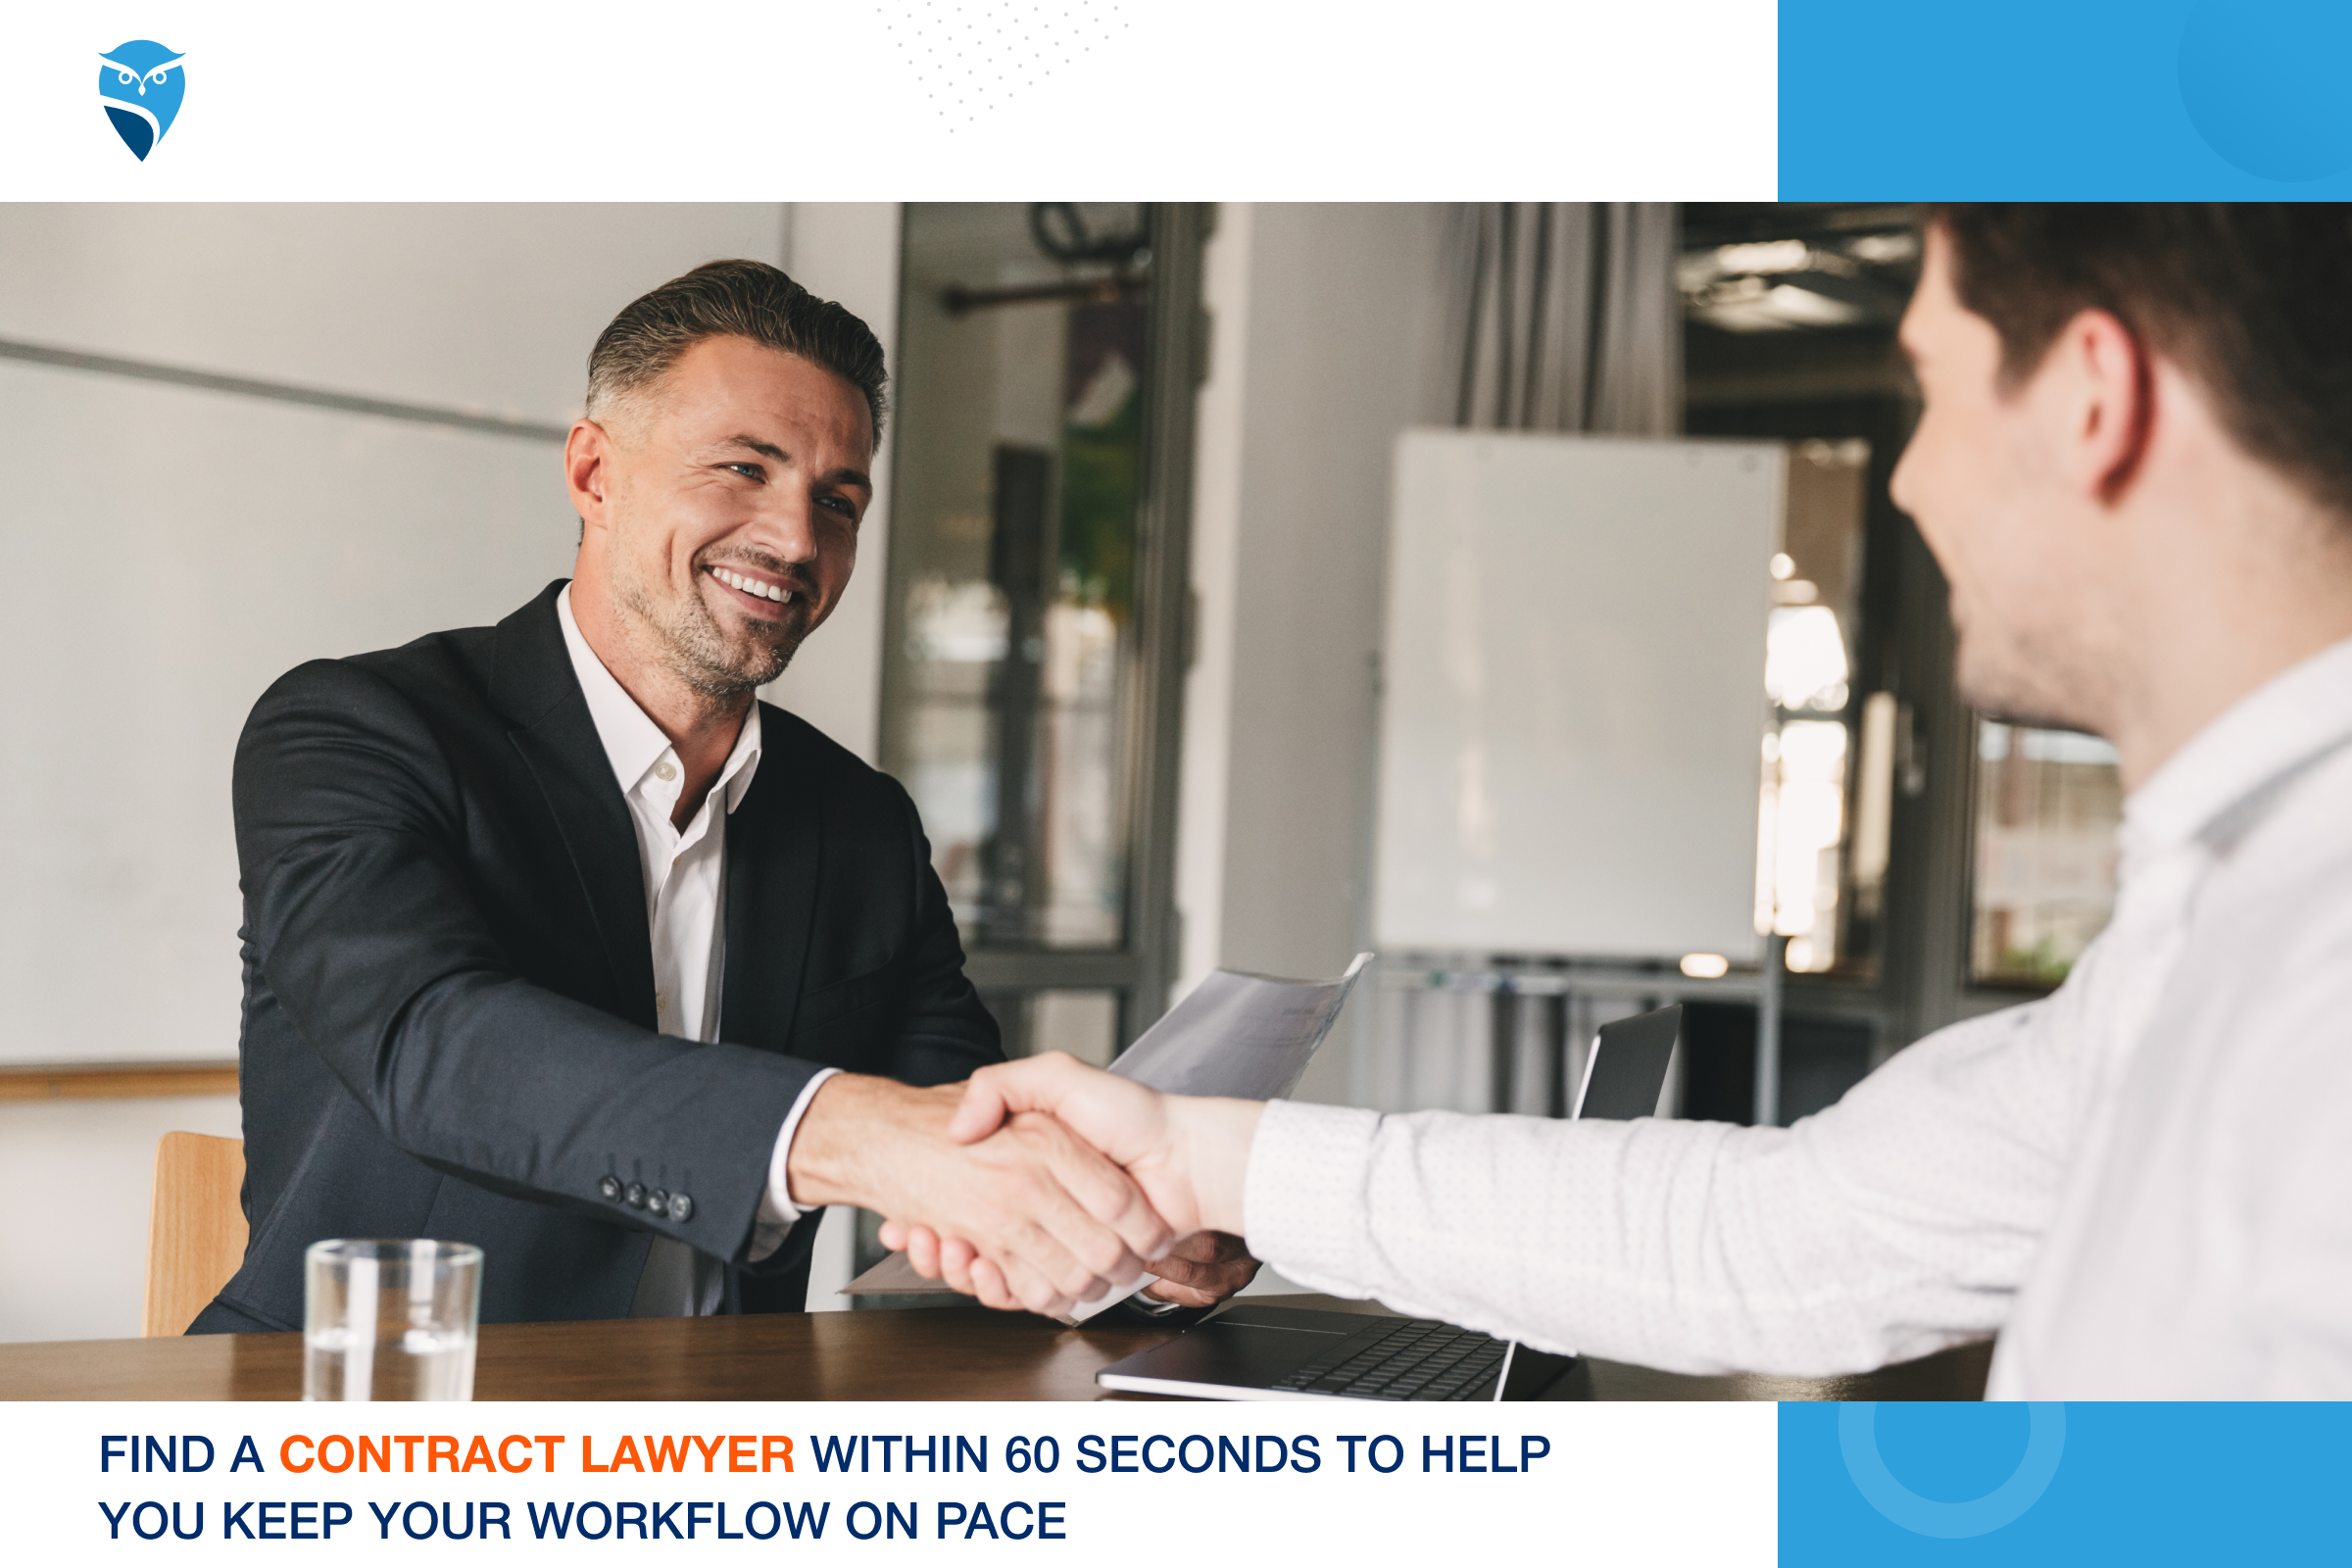 Find a Contract Lawyer within 60 Seconds to Help You Keep Your Workflow on Pace